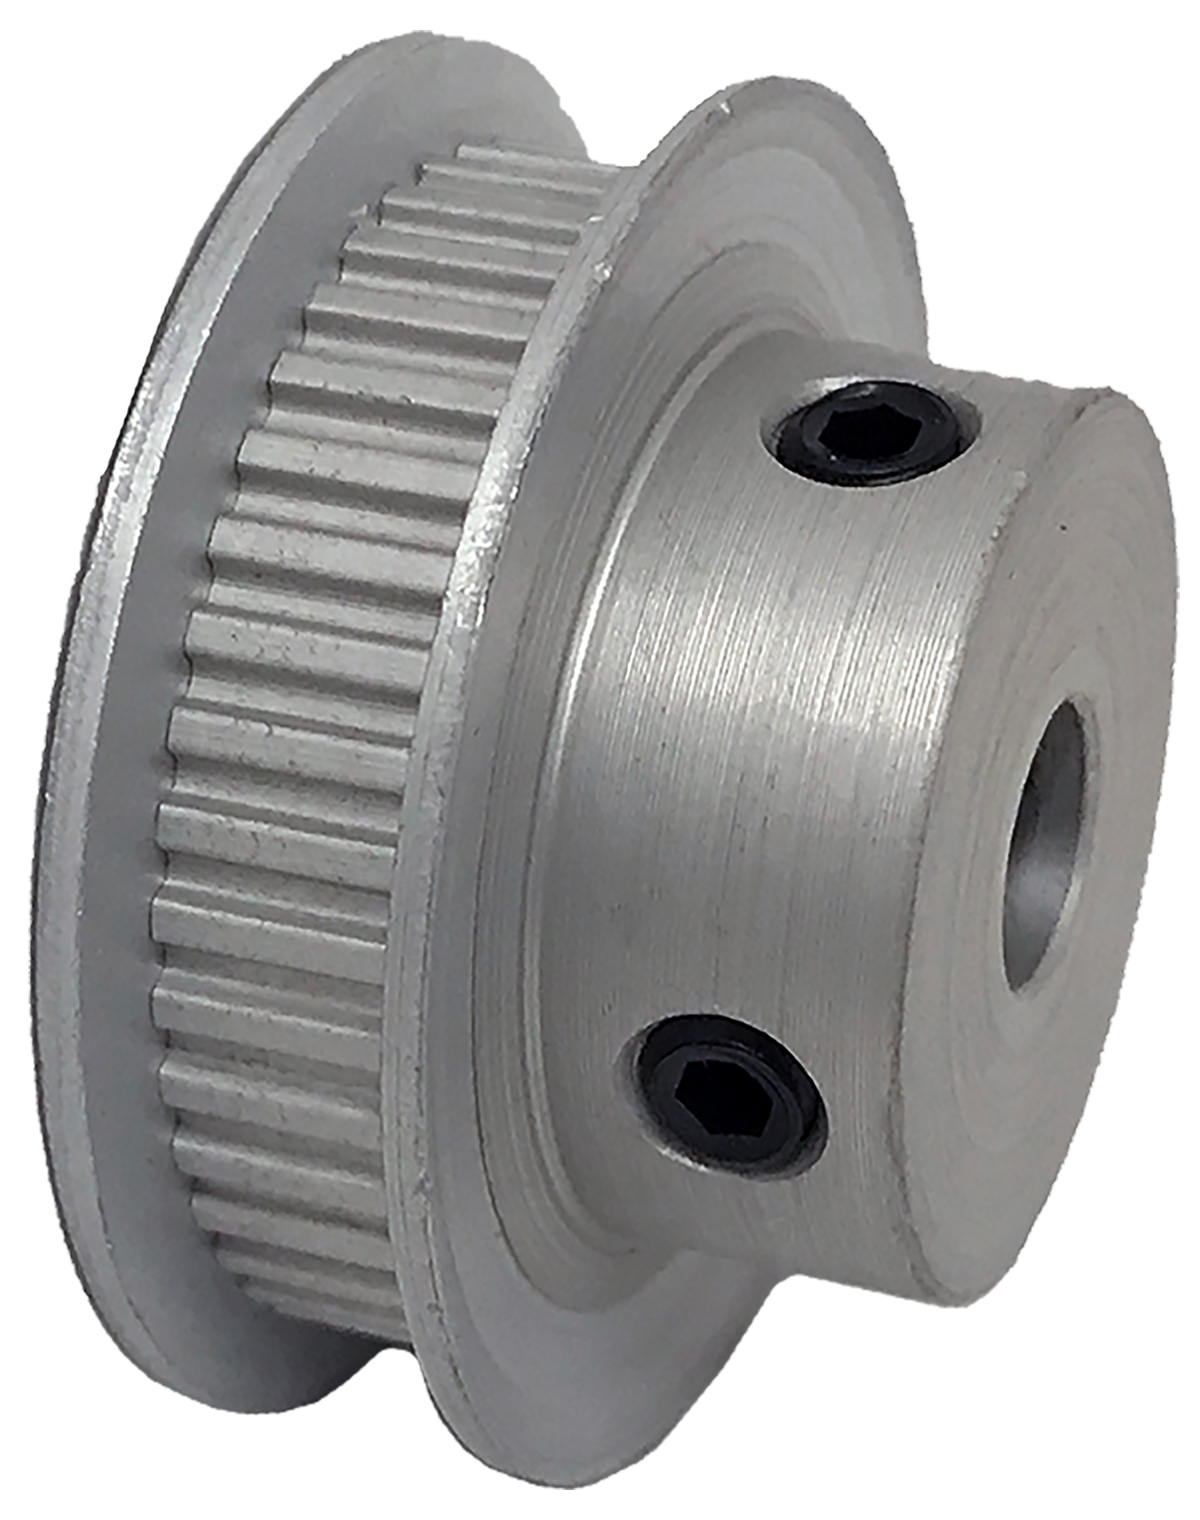 42LT187-6FA3 - Aluminum Imperial Pitch Pulleys